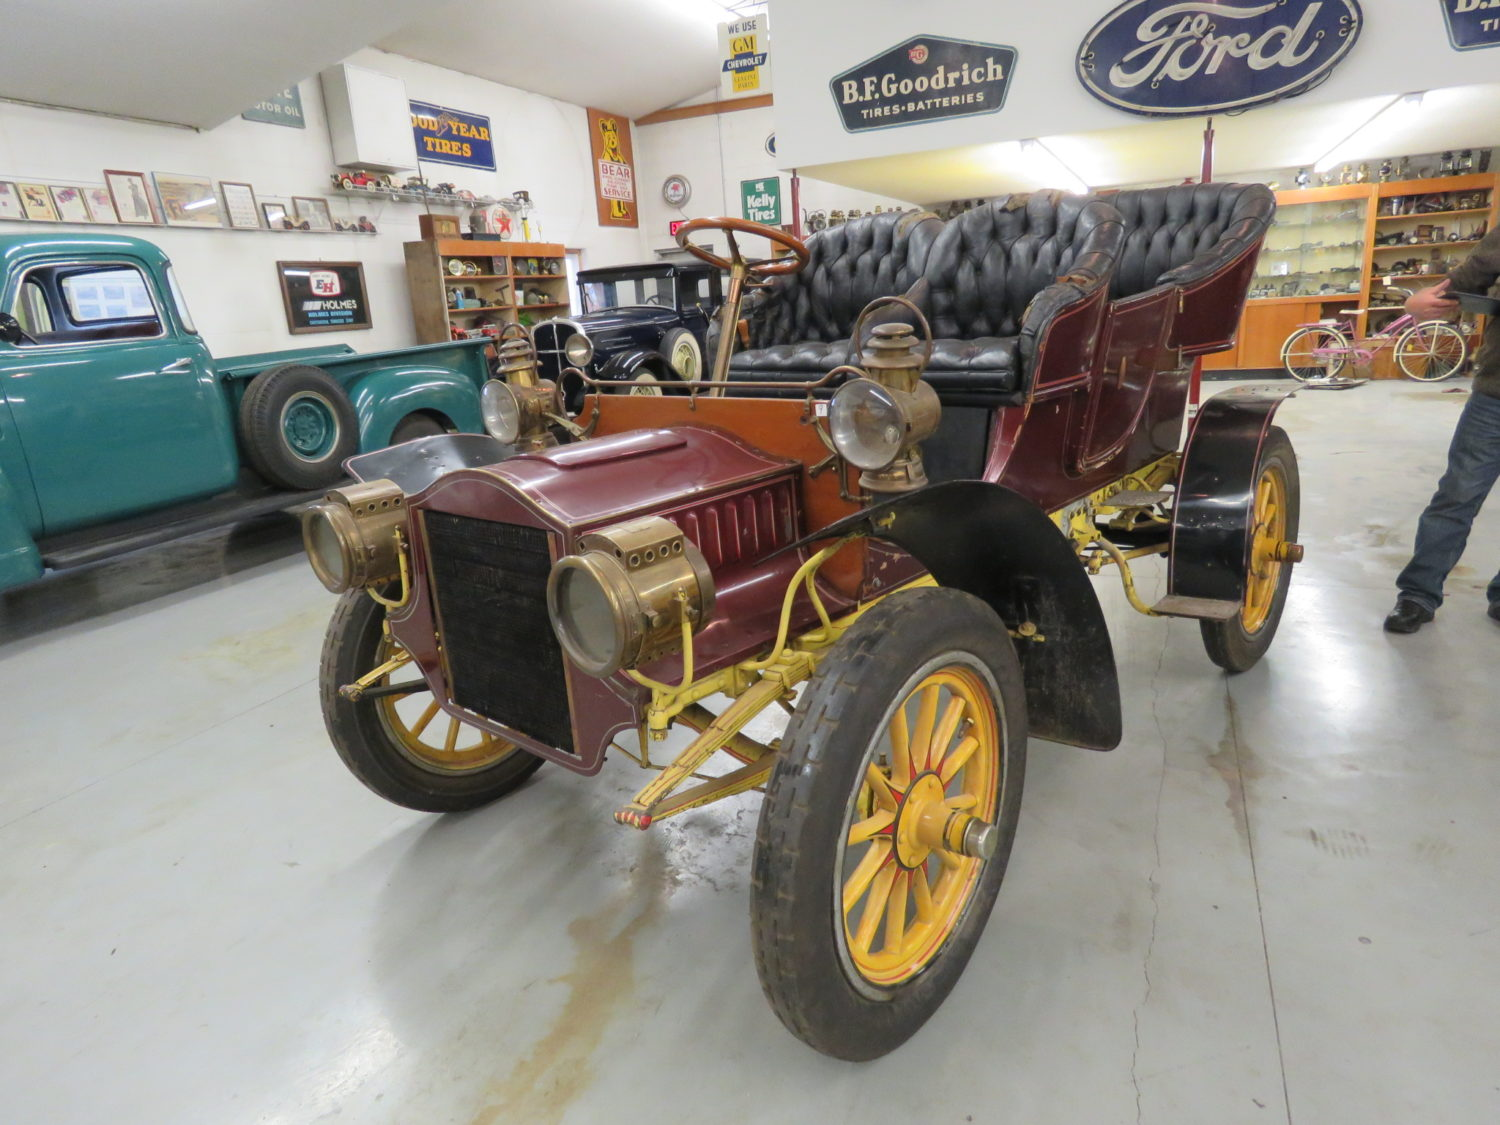 Fabulous Collector Cars, Parts, Memorabilia & More.. The Pellow Collection - image 4